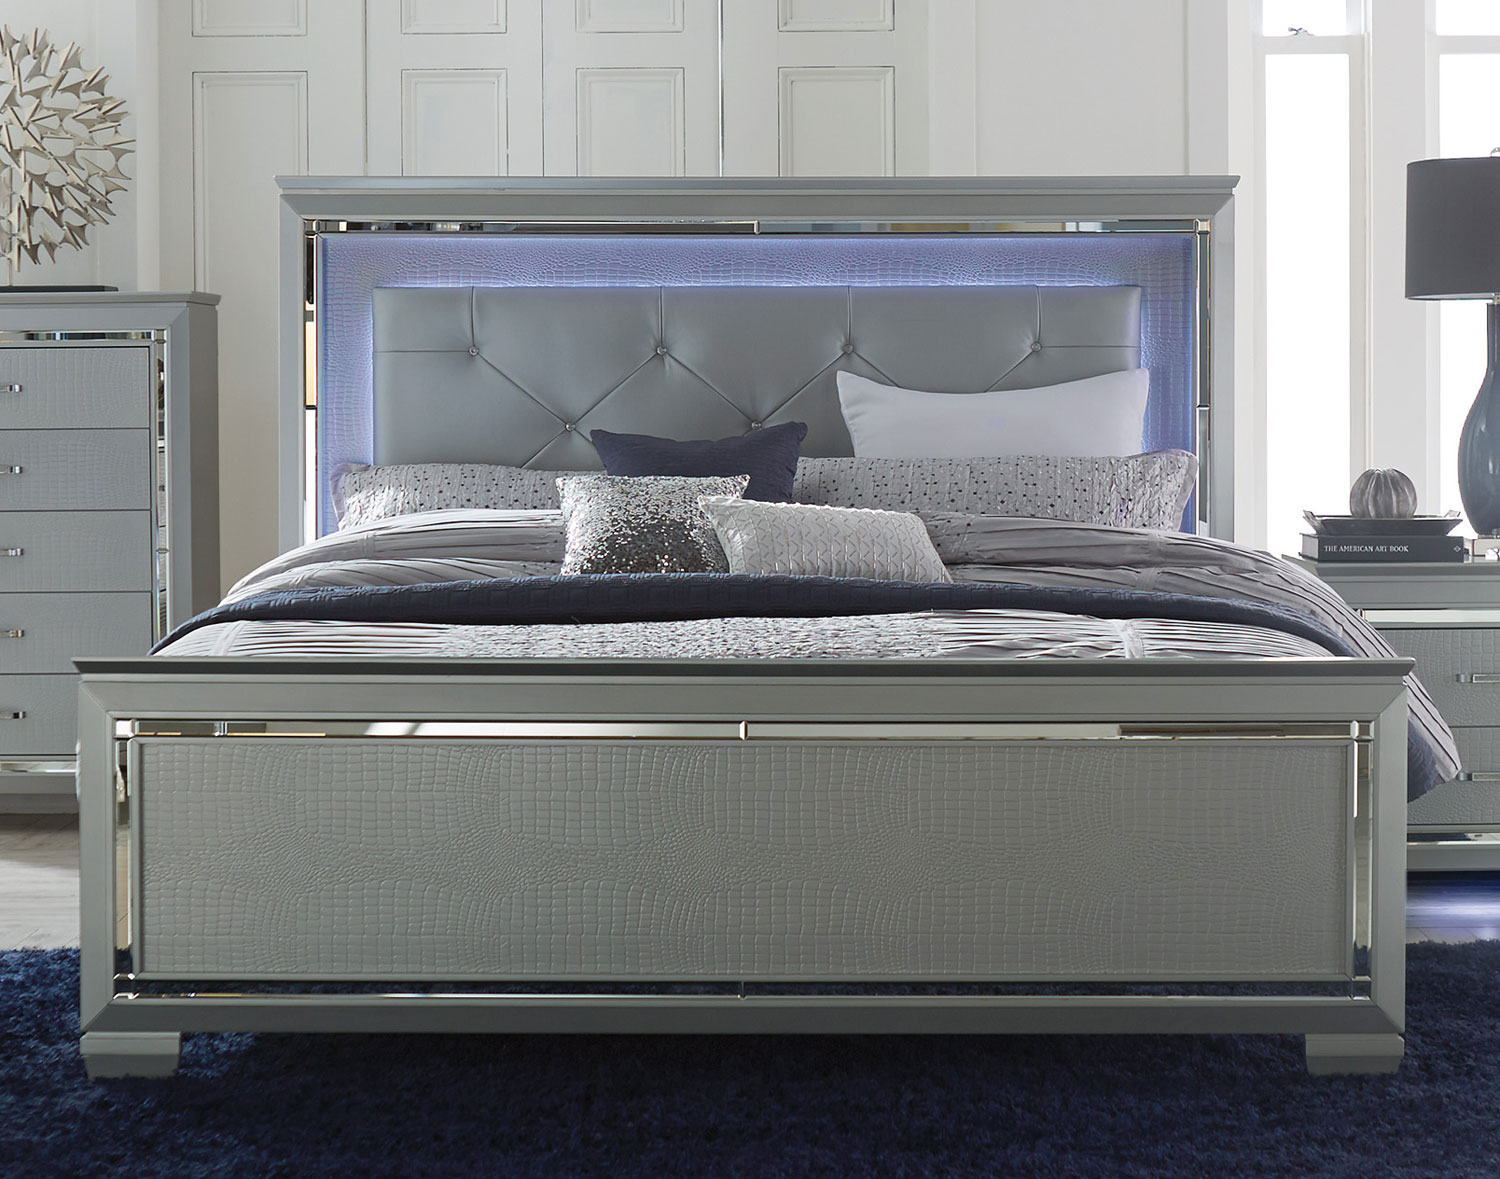 Homelegance Allura Bed with LED Lighting - Silver